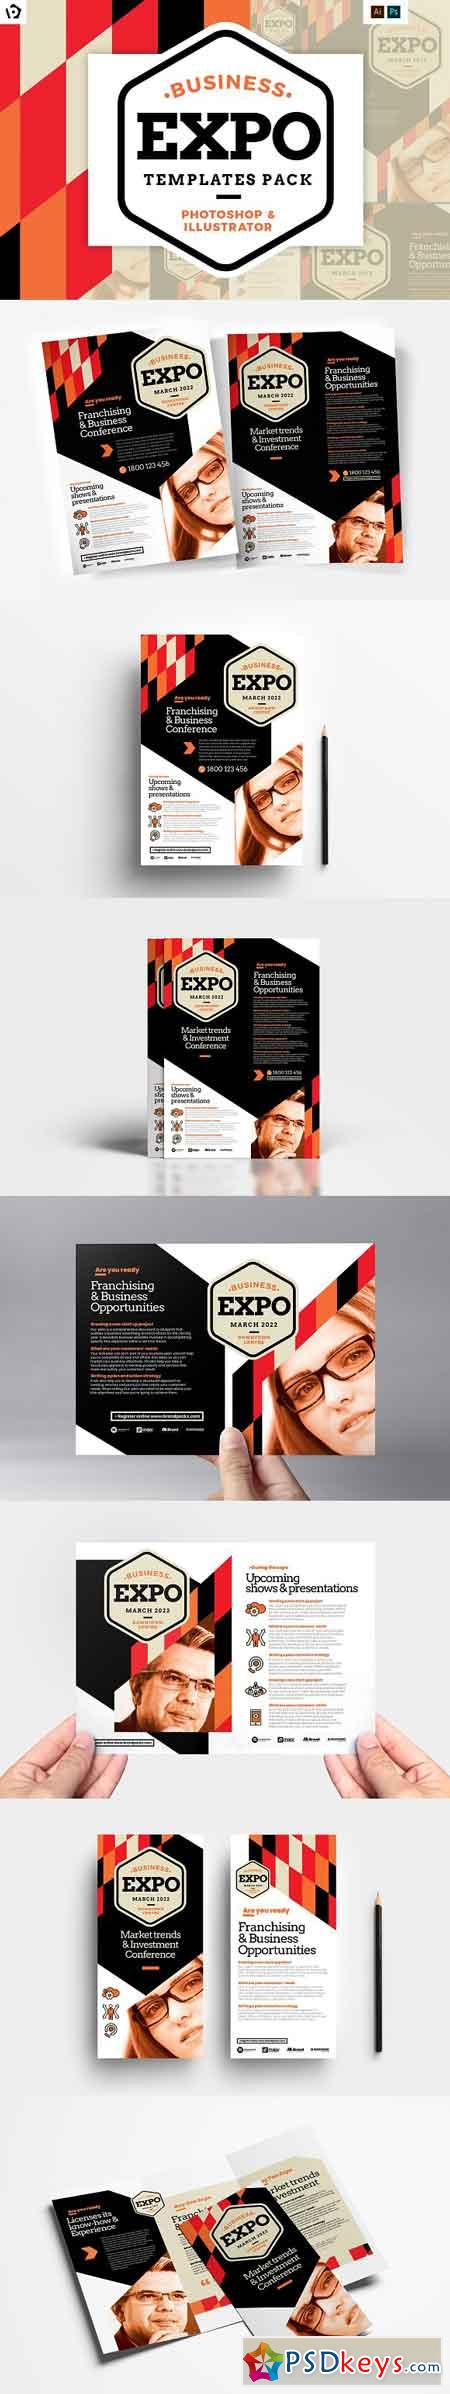 Business Event Templates Pack 3015003